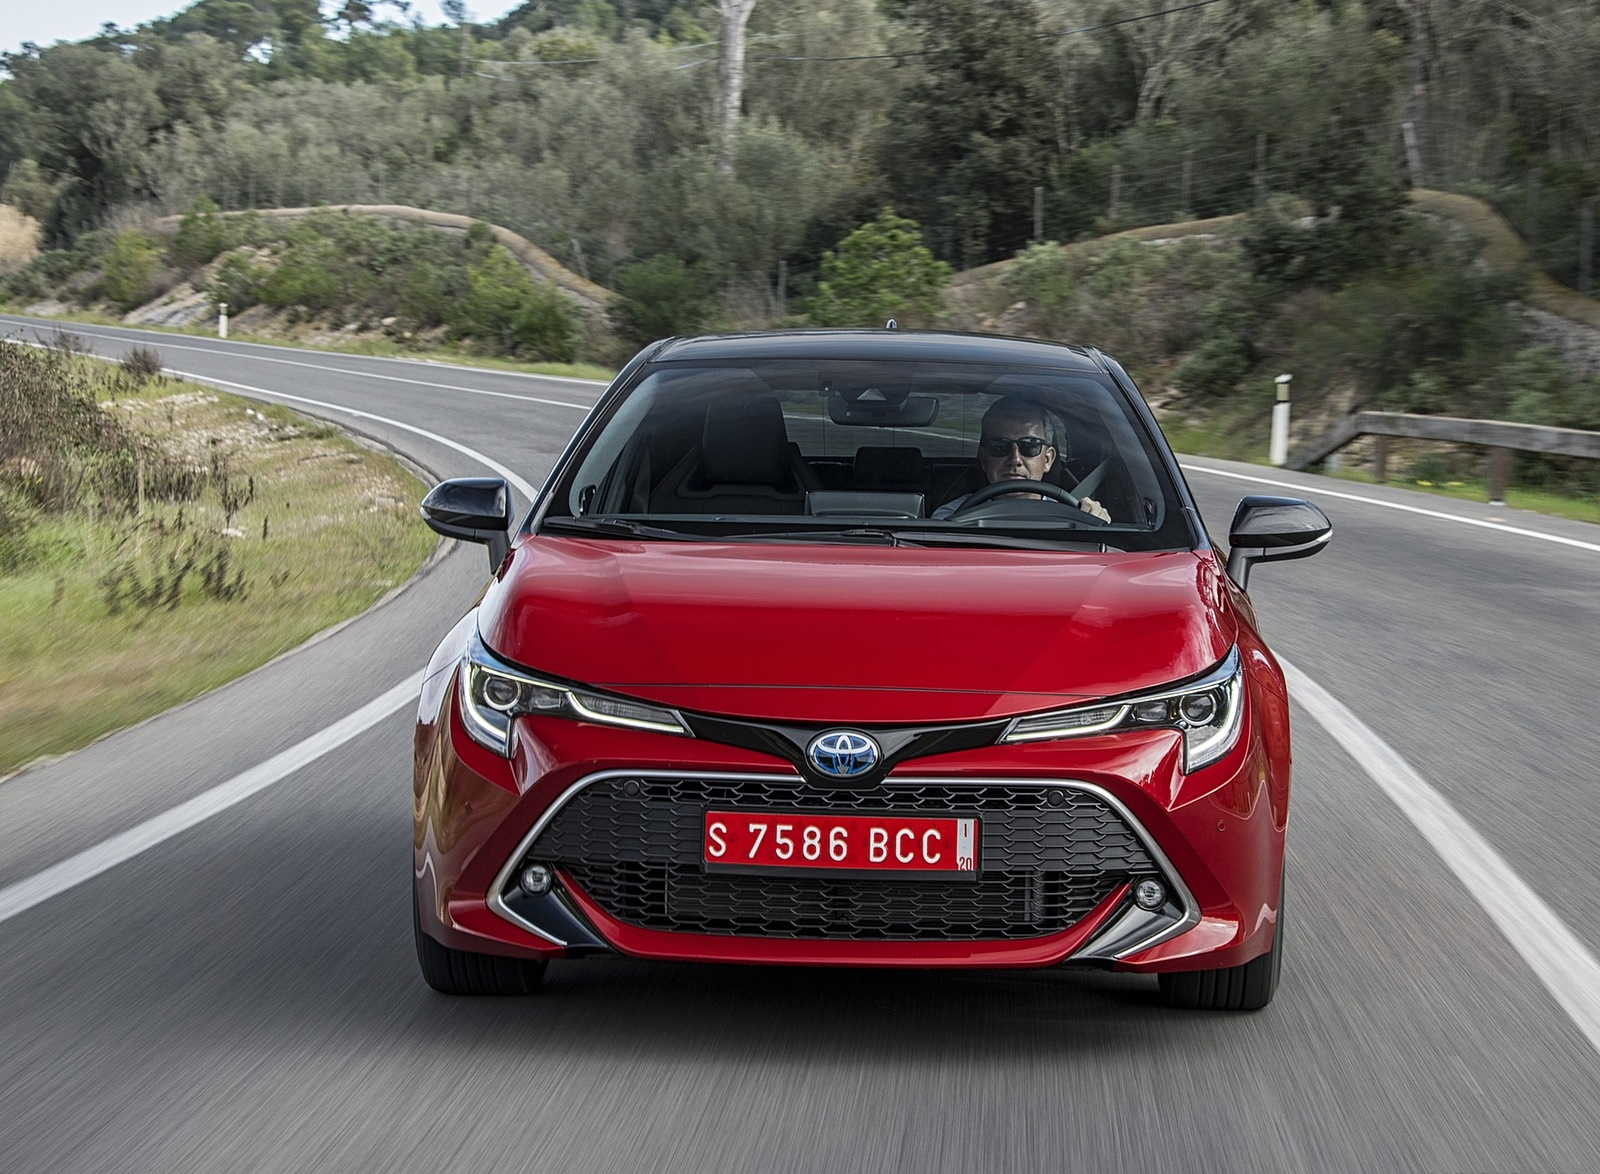 2019 Toyota Corolla Hatchback Hybrid 2.0L Red bitone (EU-Spec) Front Wallpapers (1)